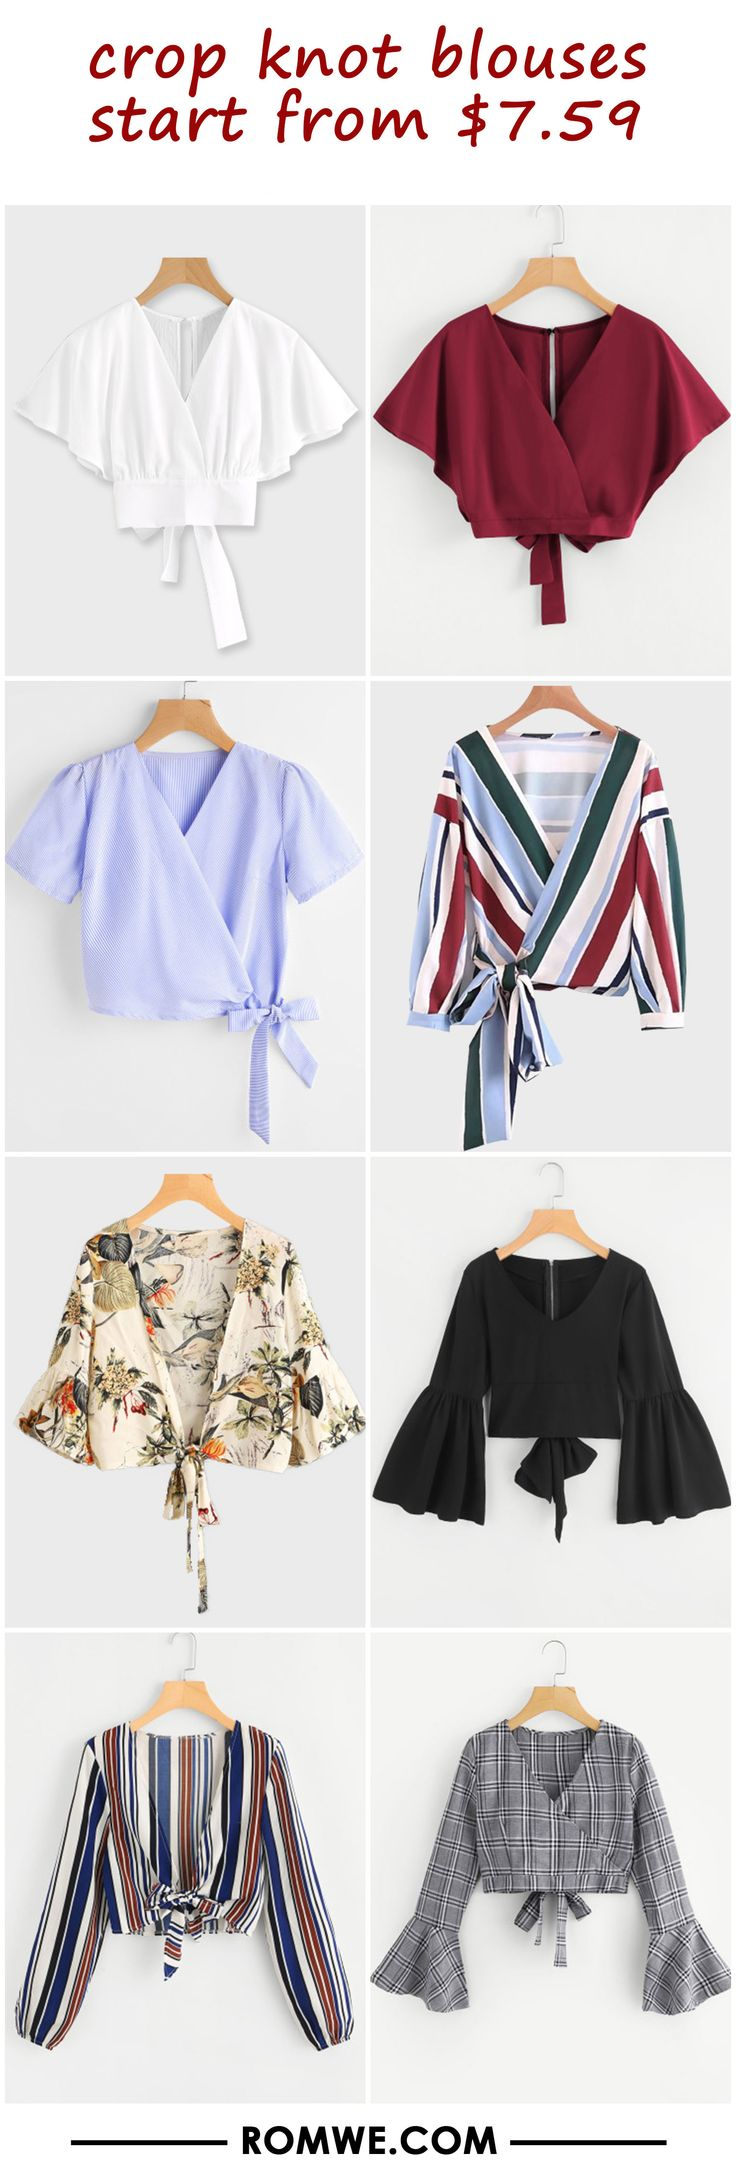 crop knot blouses from $7.59